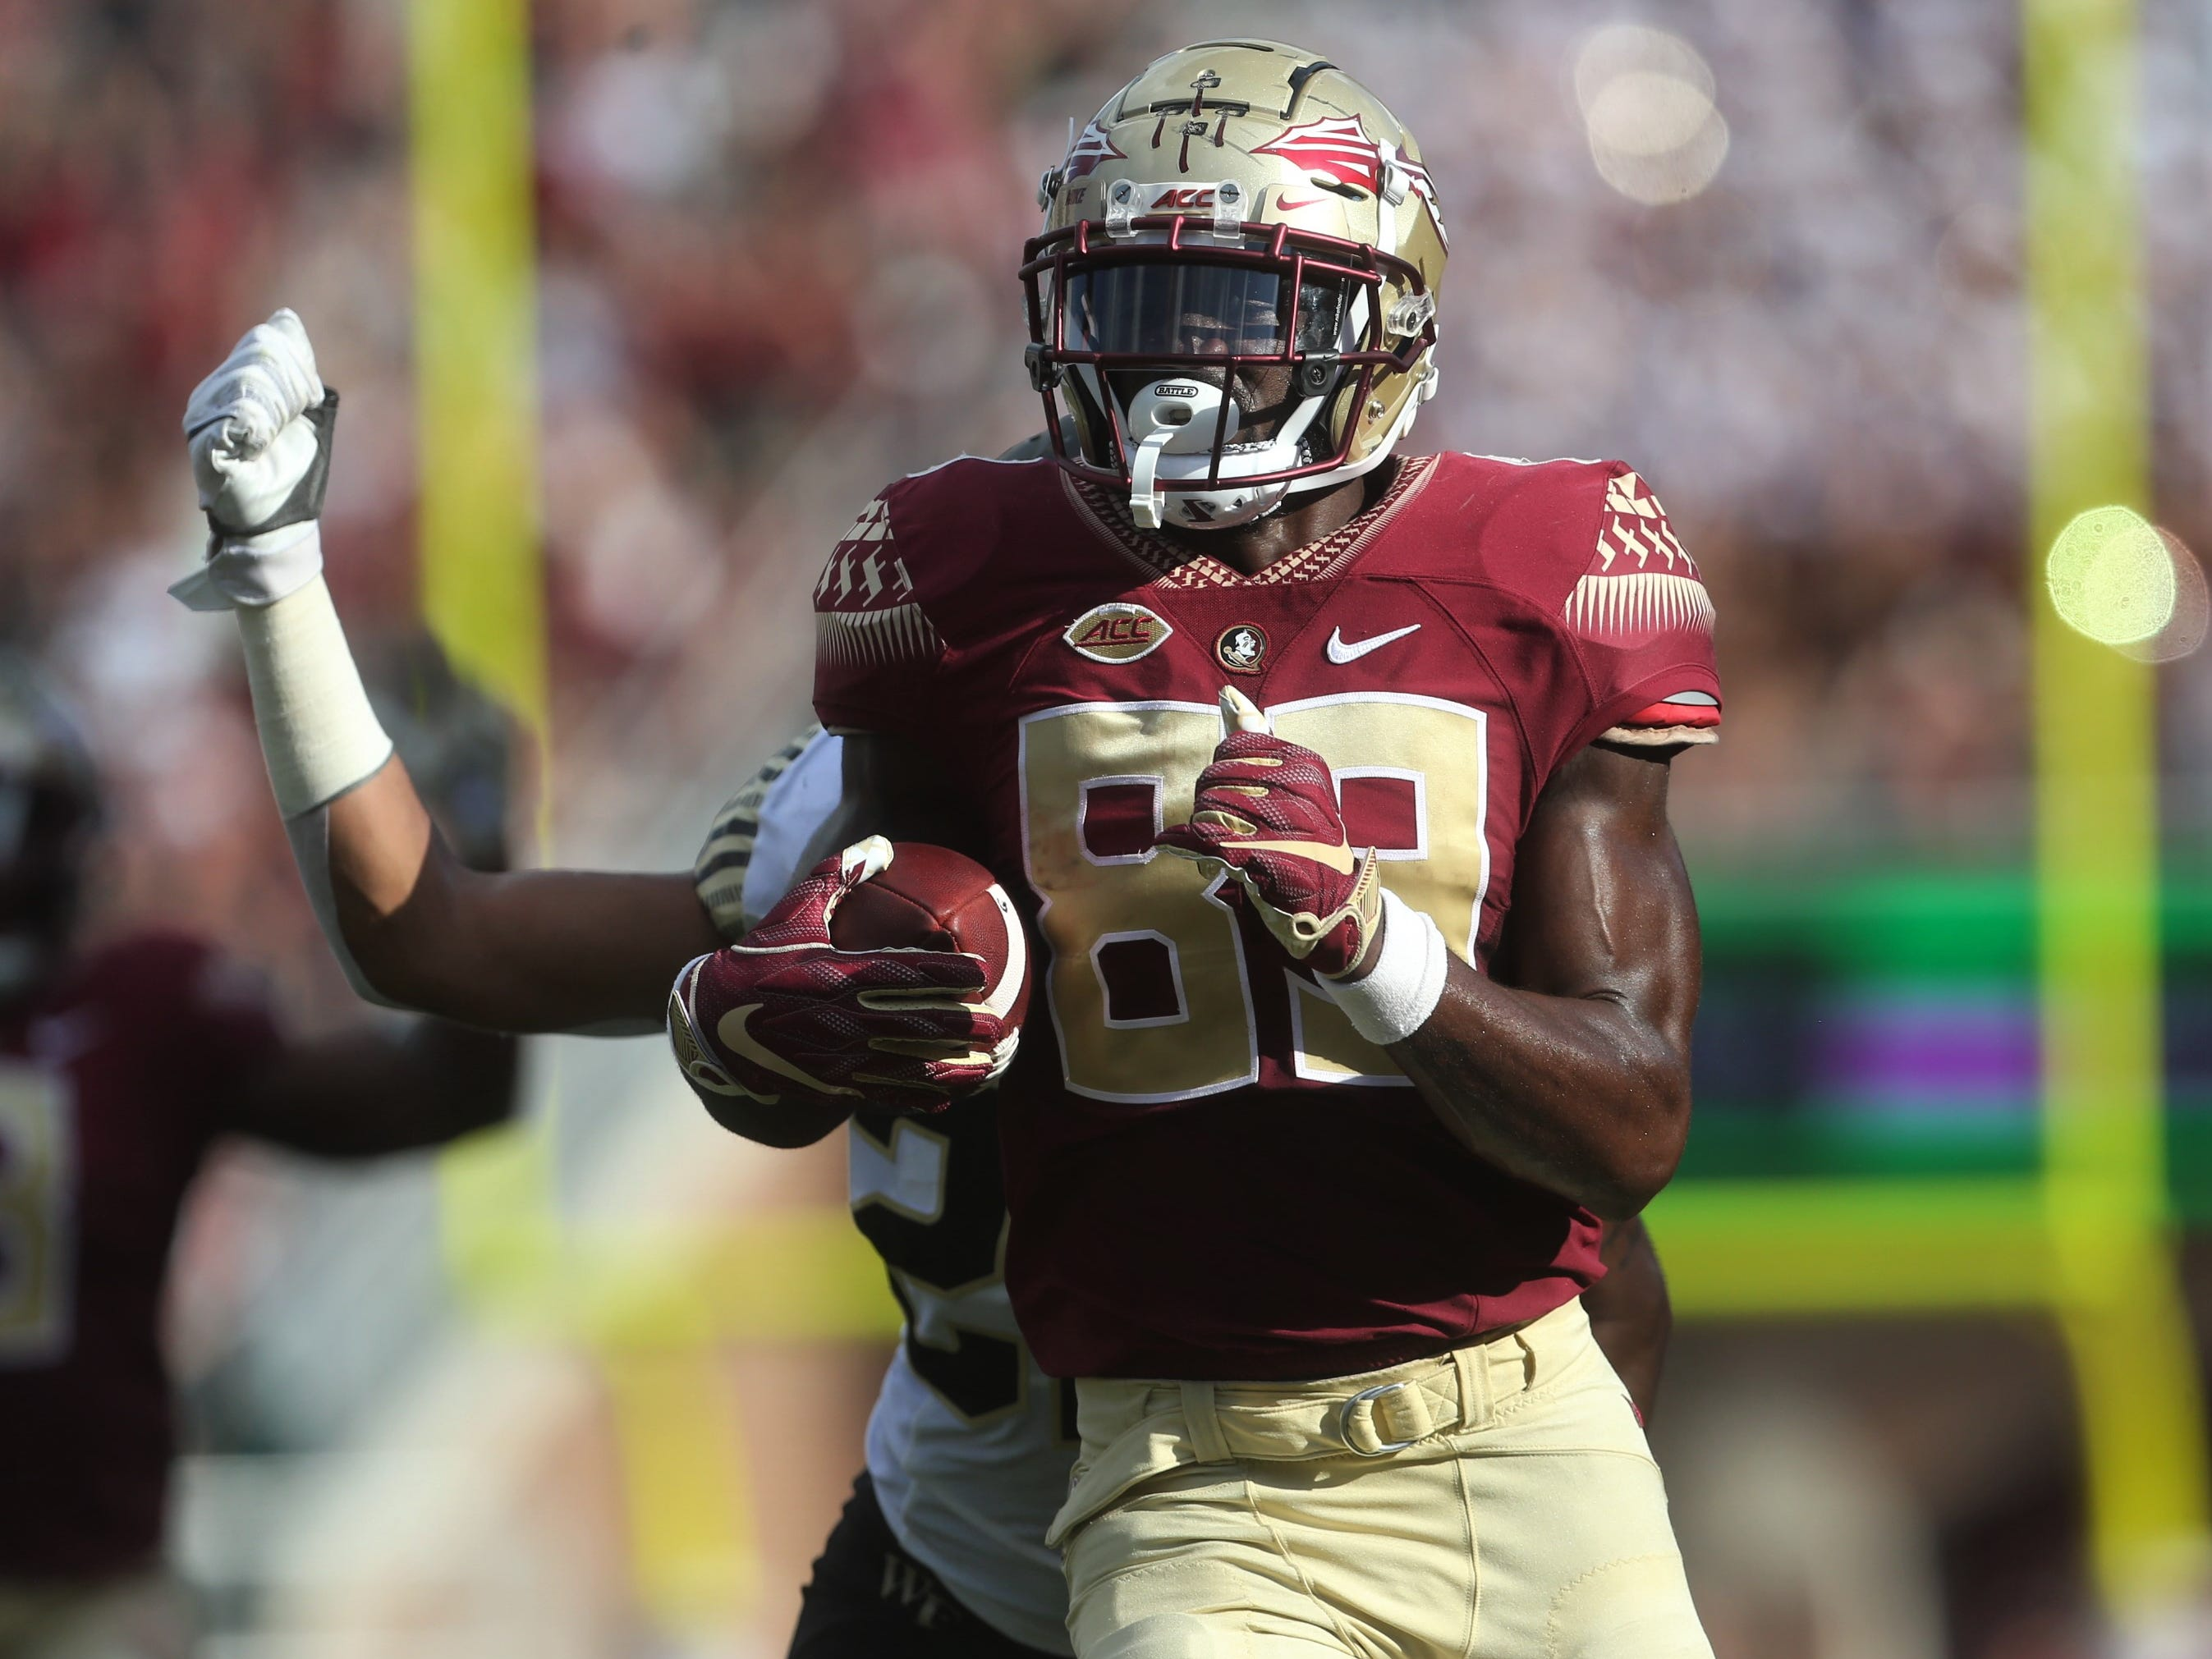 Florida State receiver Keith Gavin races to outrun Wake Forest linebacker Justin Strnad towards the goal line after a catch and run against Wake Forest during a game at Doak Campbell Stadium on Saturday, Oct. 20, 2018.